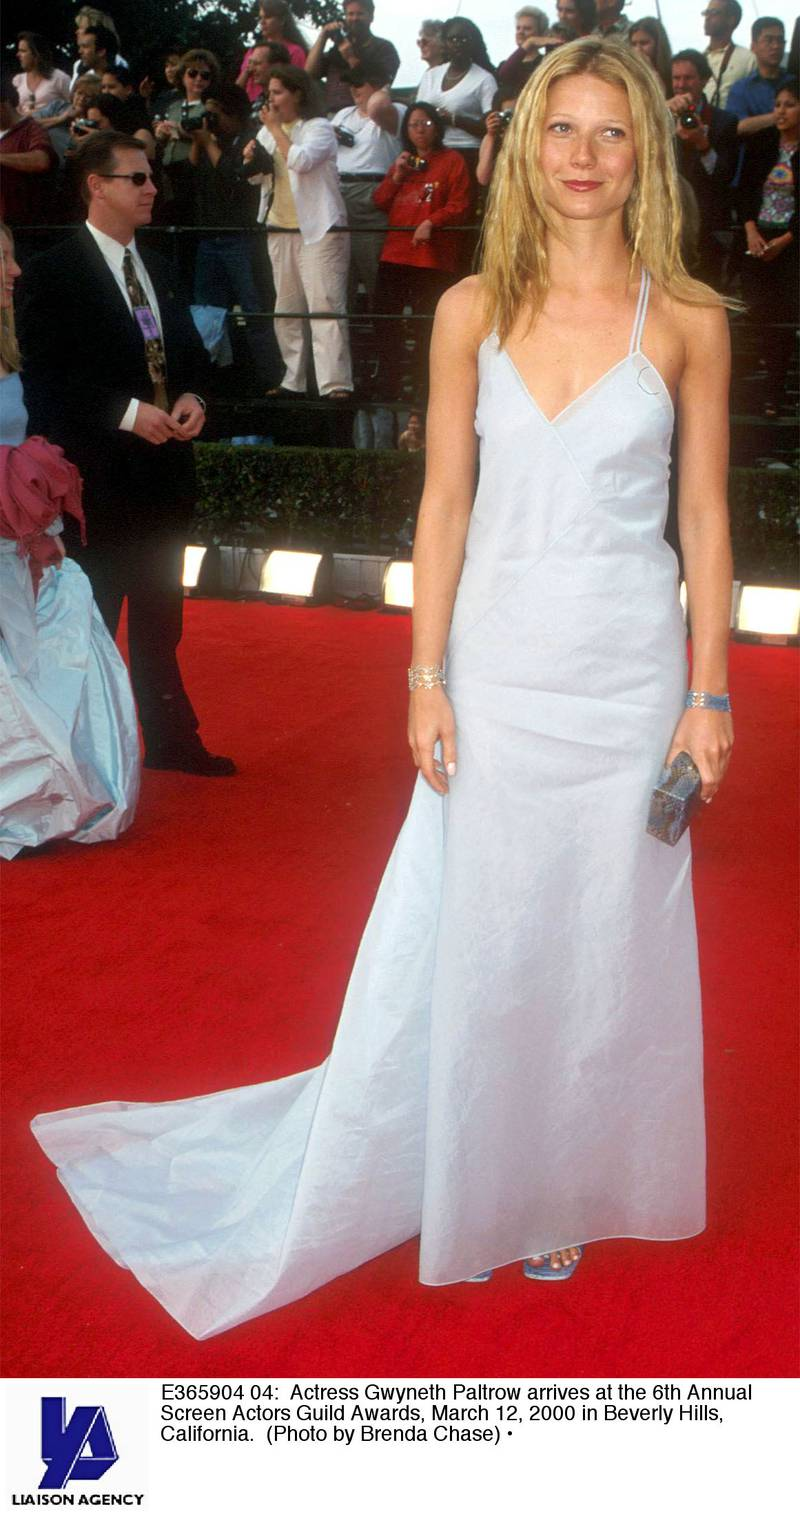 E365904 04: Actress Gwyneth Paltrow arrives at the 6th Annual Screen Actors Guild Awards, March 12, 2000 in Beverly Hills, California. (Photo by Brenda Chase)